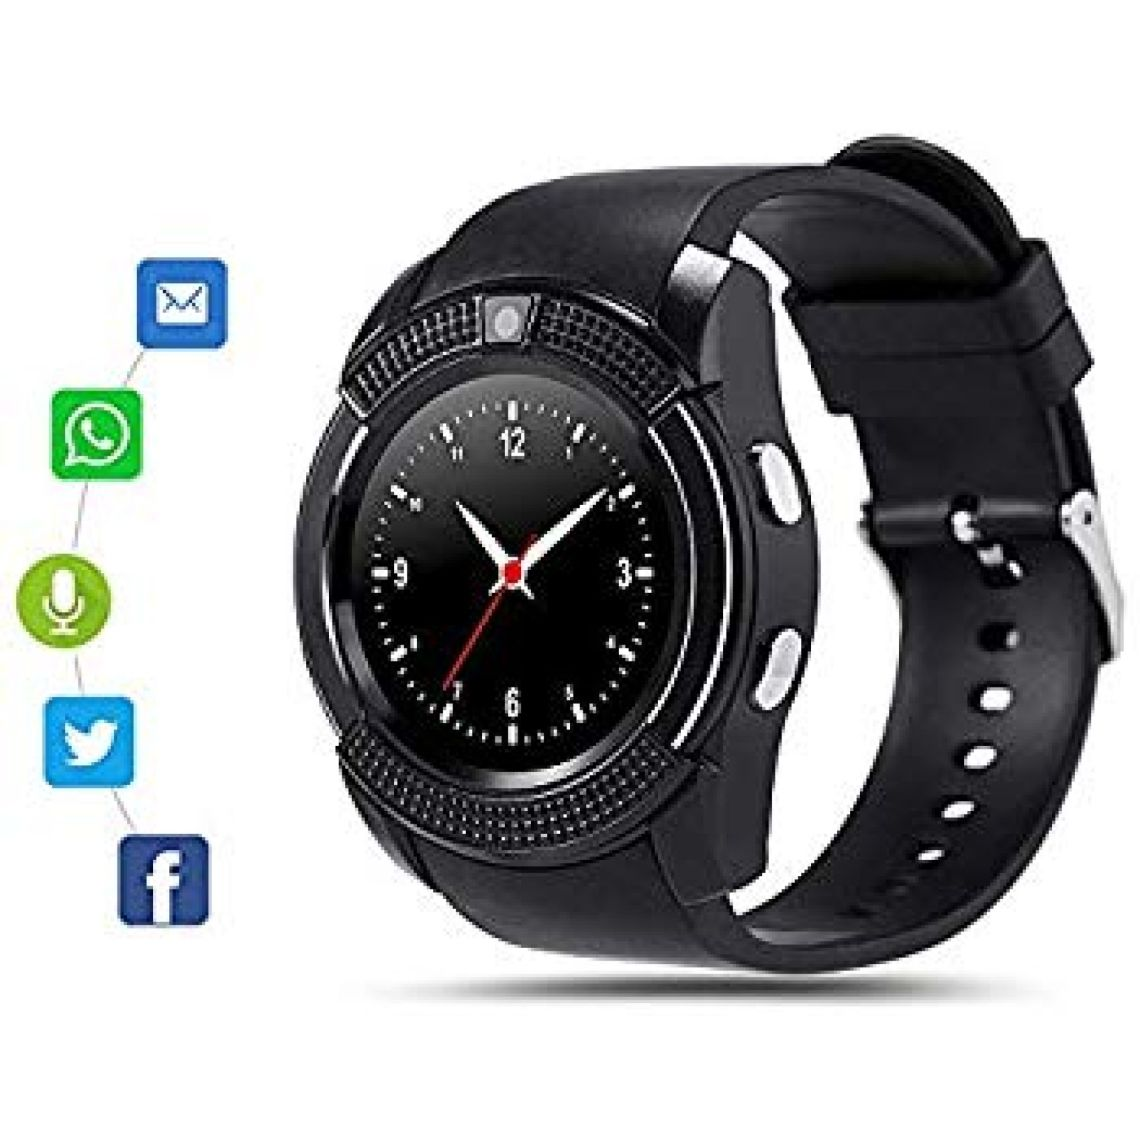 Amazon.com: Bluetooth Smart Watch for Android Phone,Android Smart Watch Touchscreen with Camera, SIM Card Slot,Music for iPhone Samsung: Cell Phones & Accessories